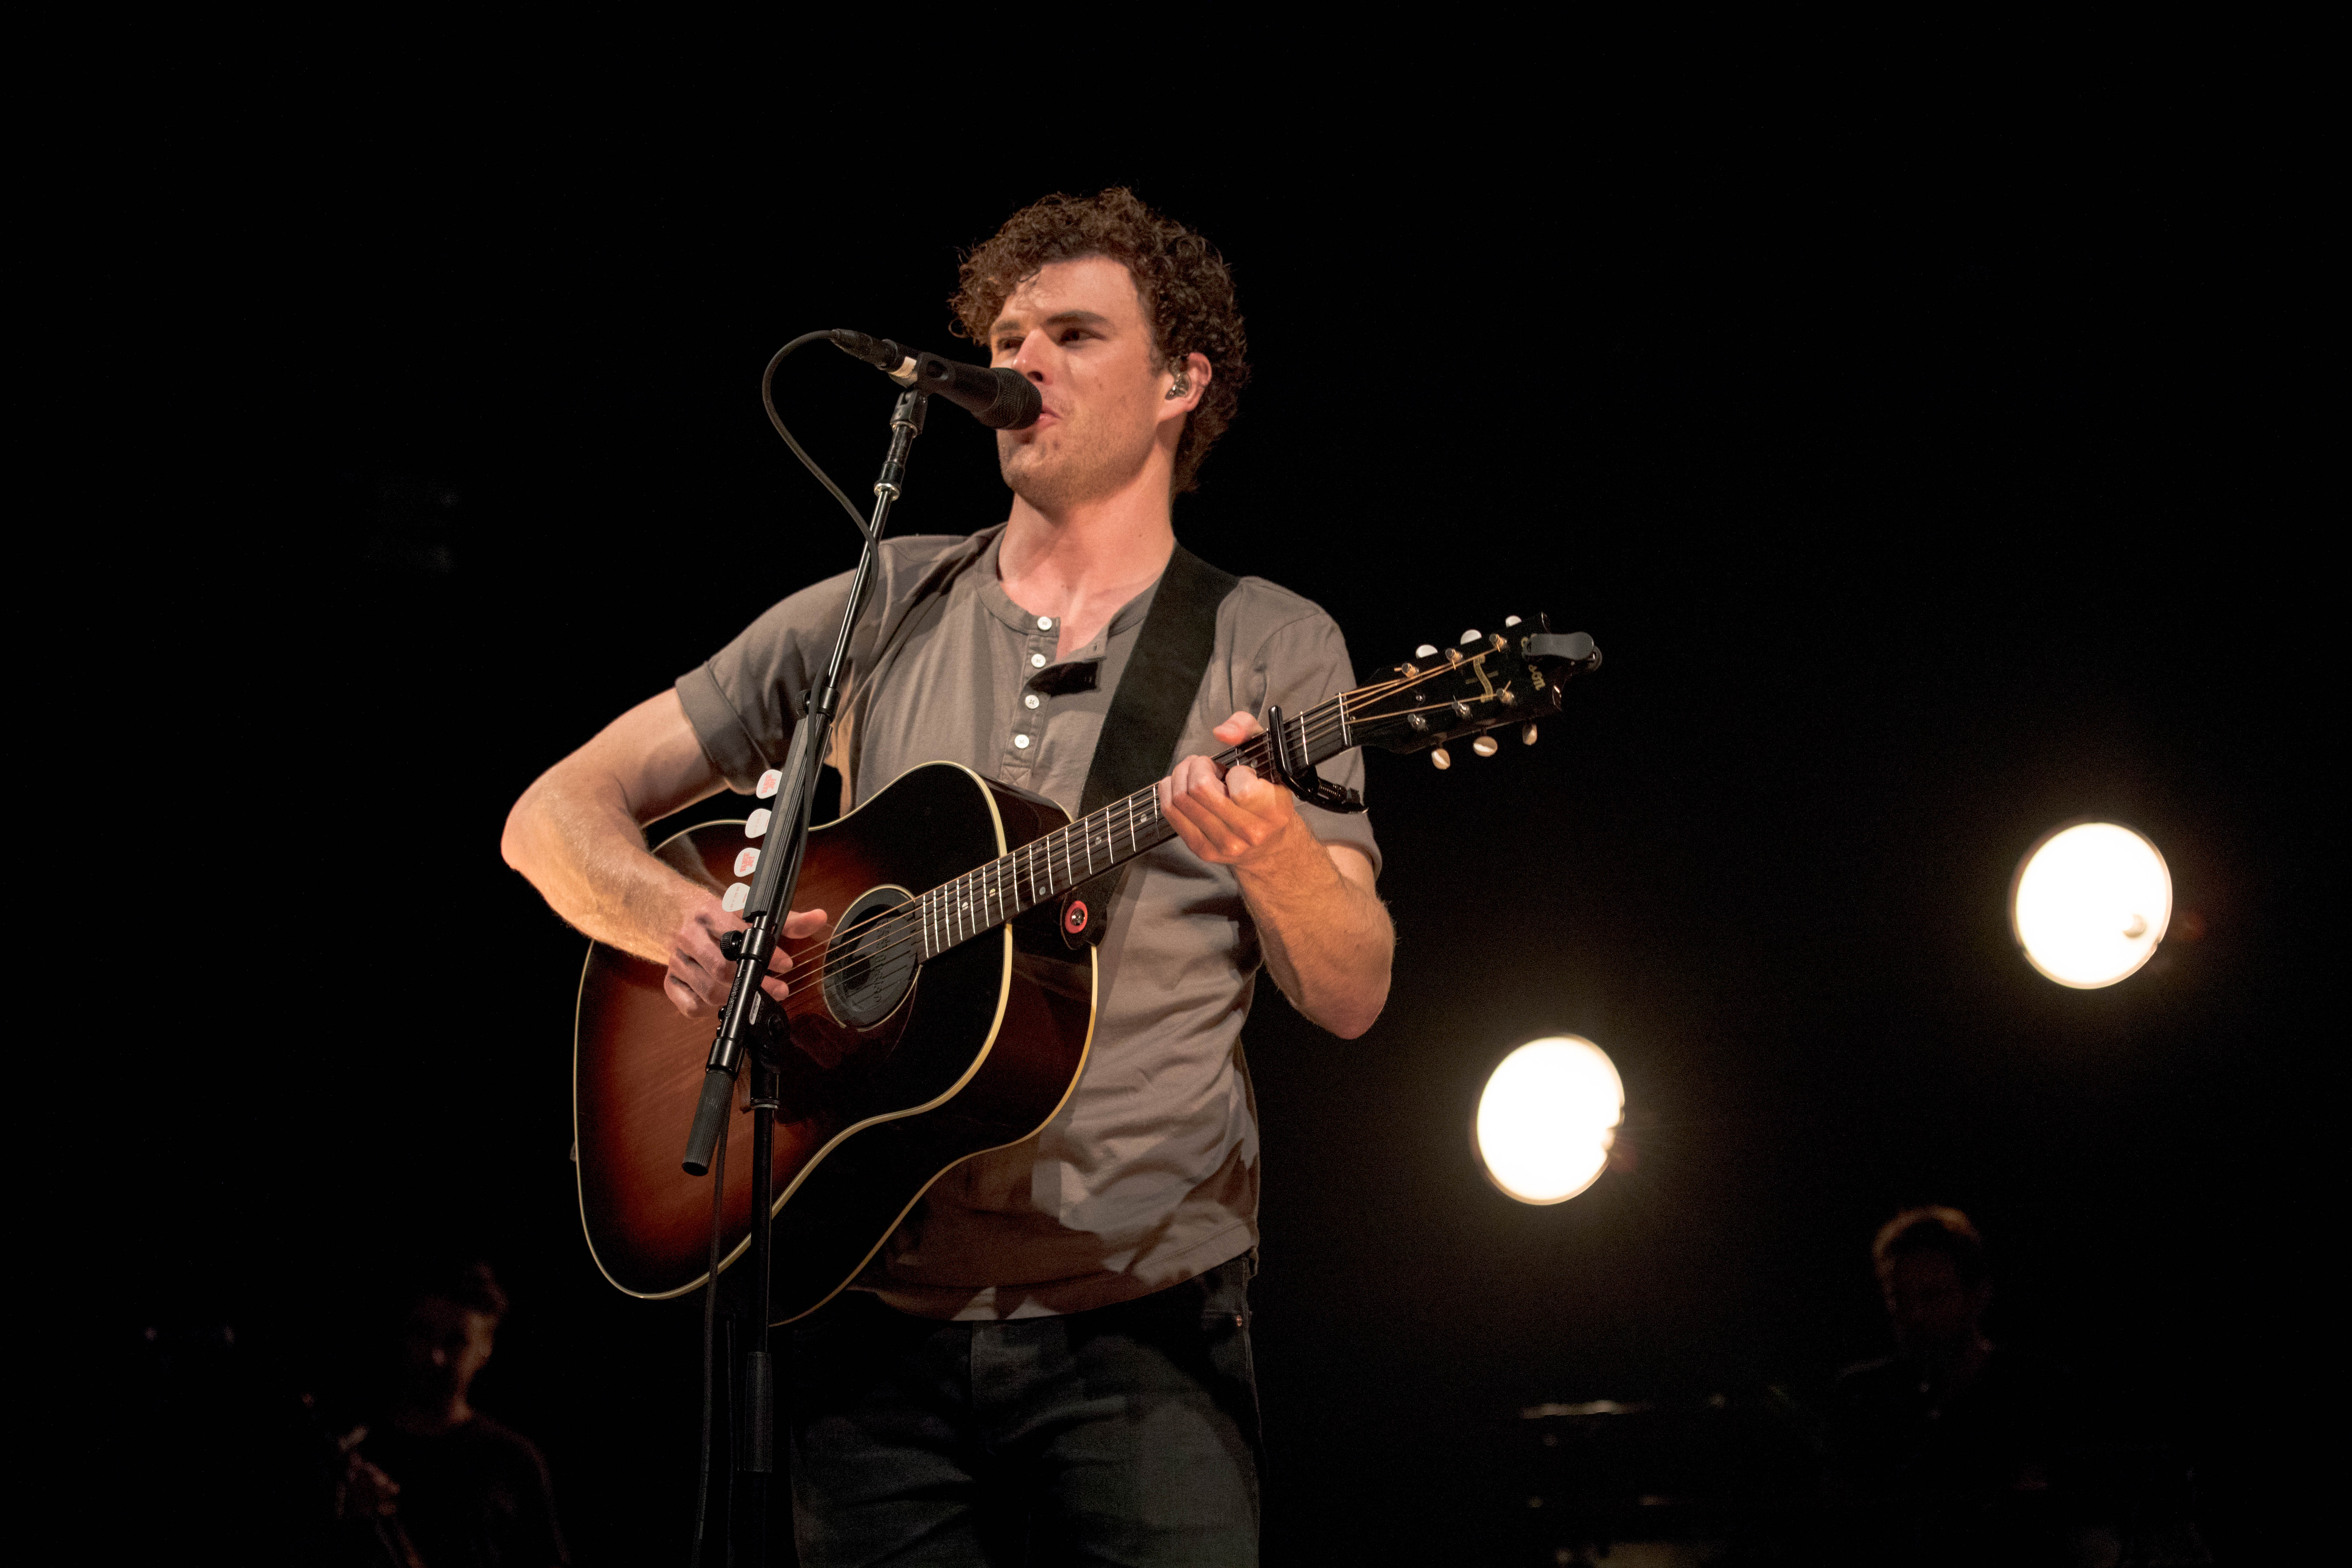 vance joy live review sydney photo credit statler willand savage thrills savagethrills 8